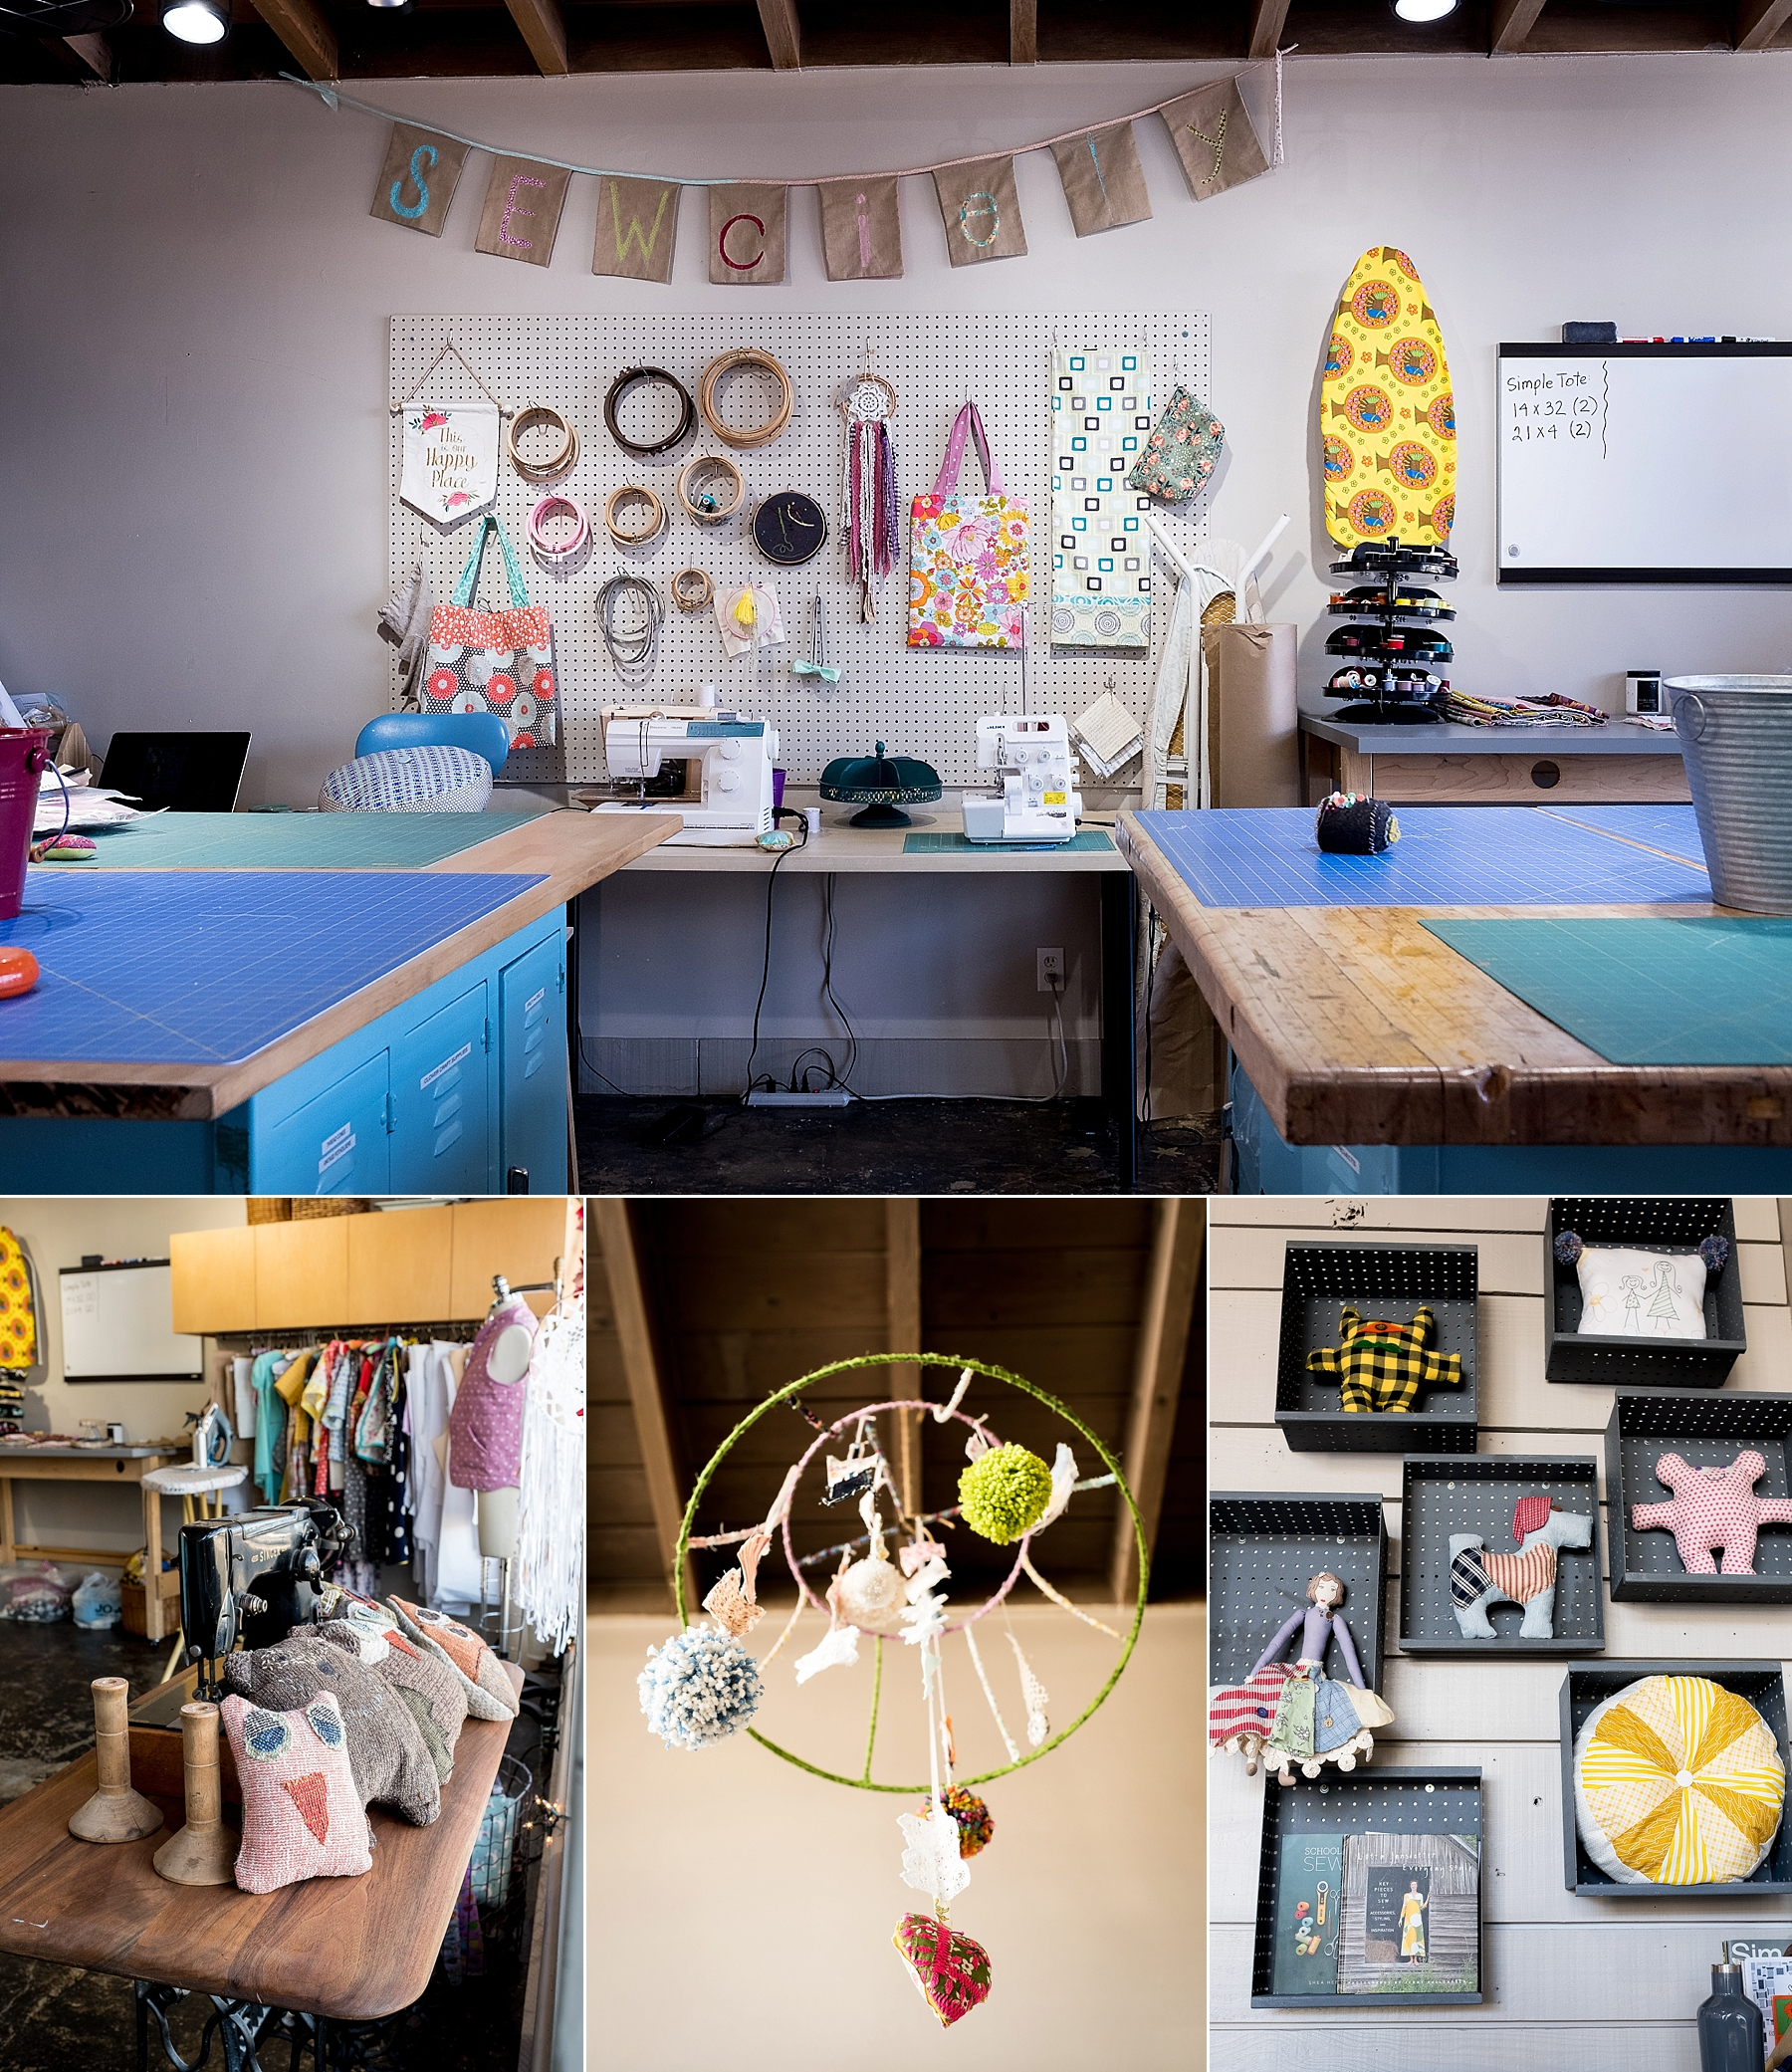 Featuring small businesses in Claremont CA by Erica Faith Photography